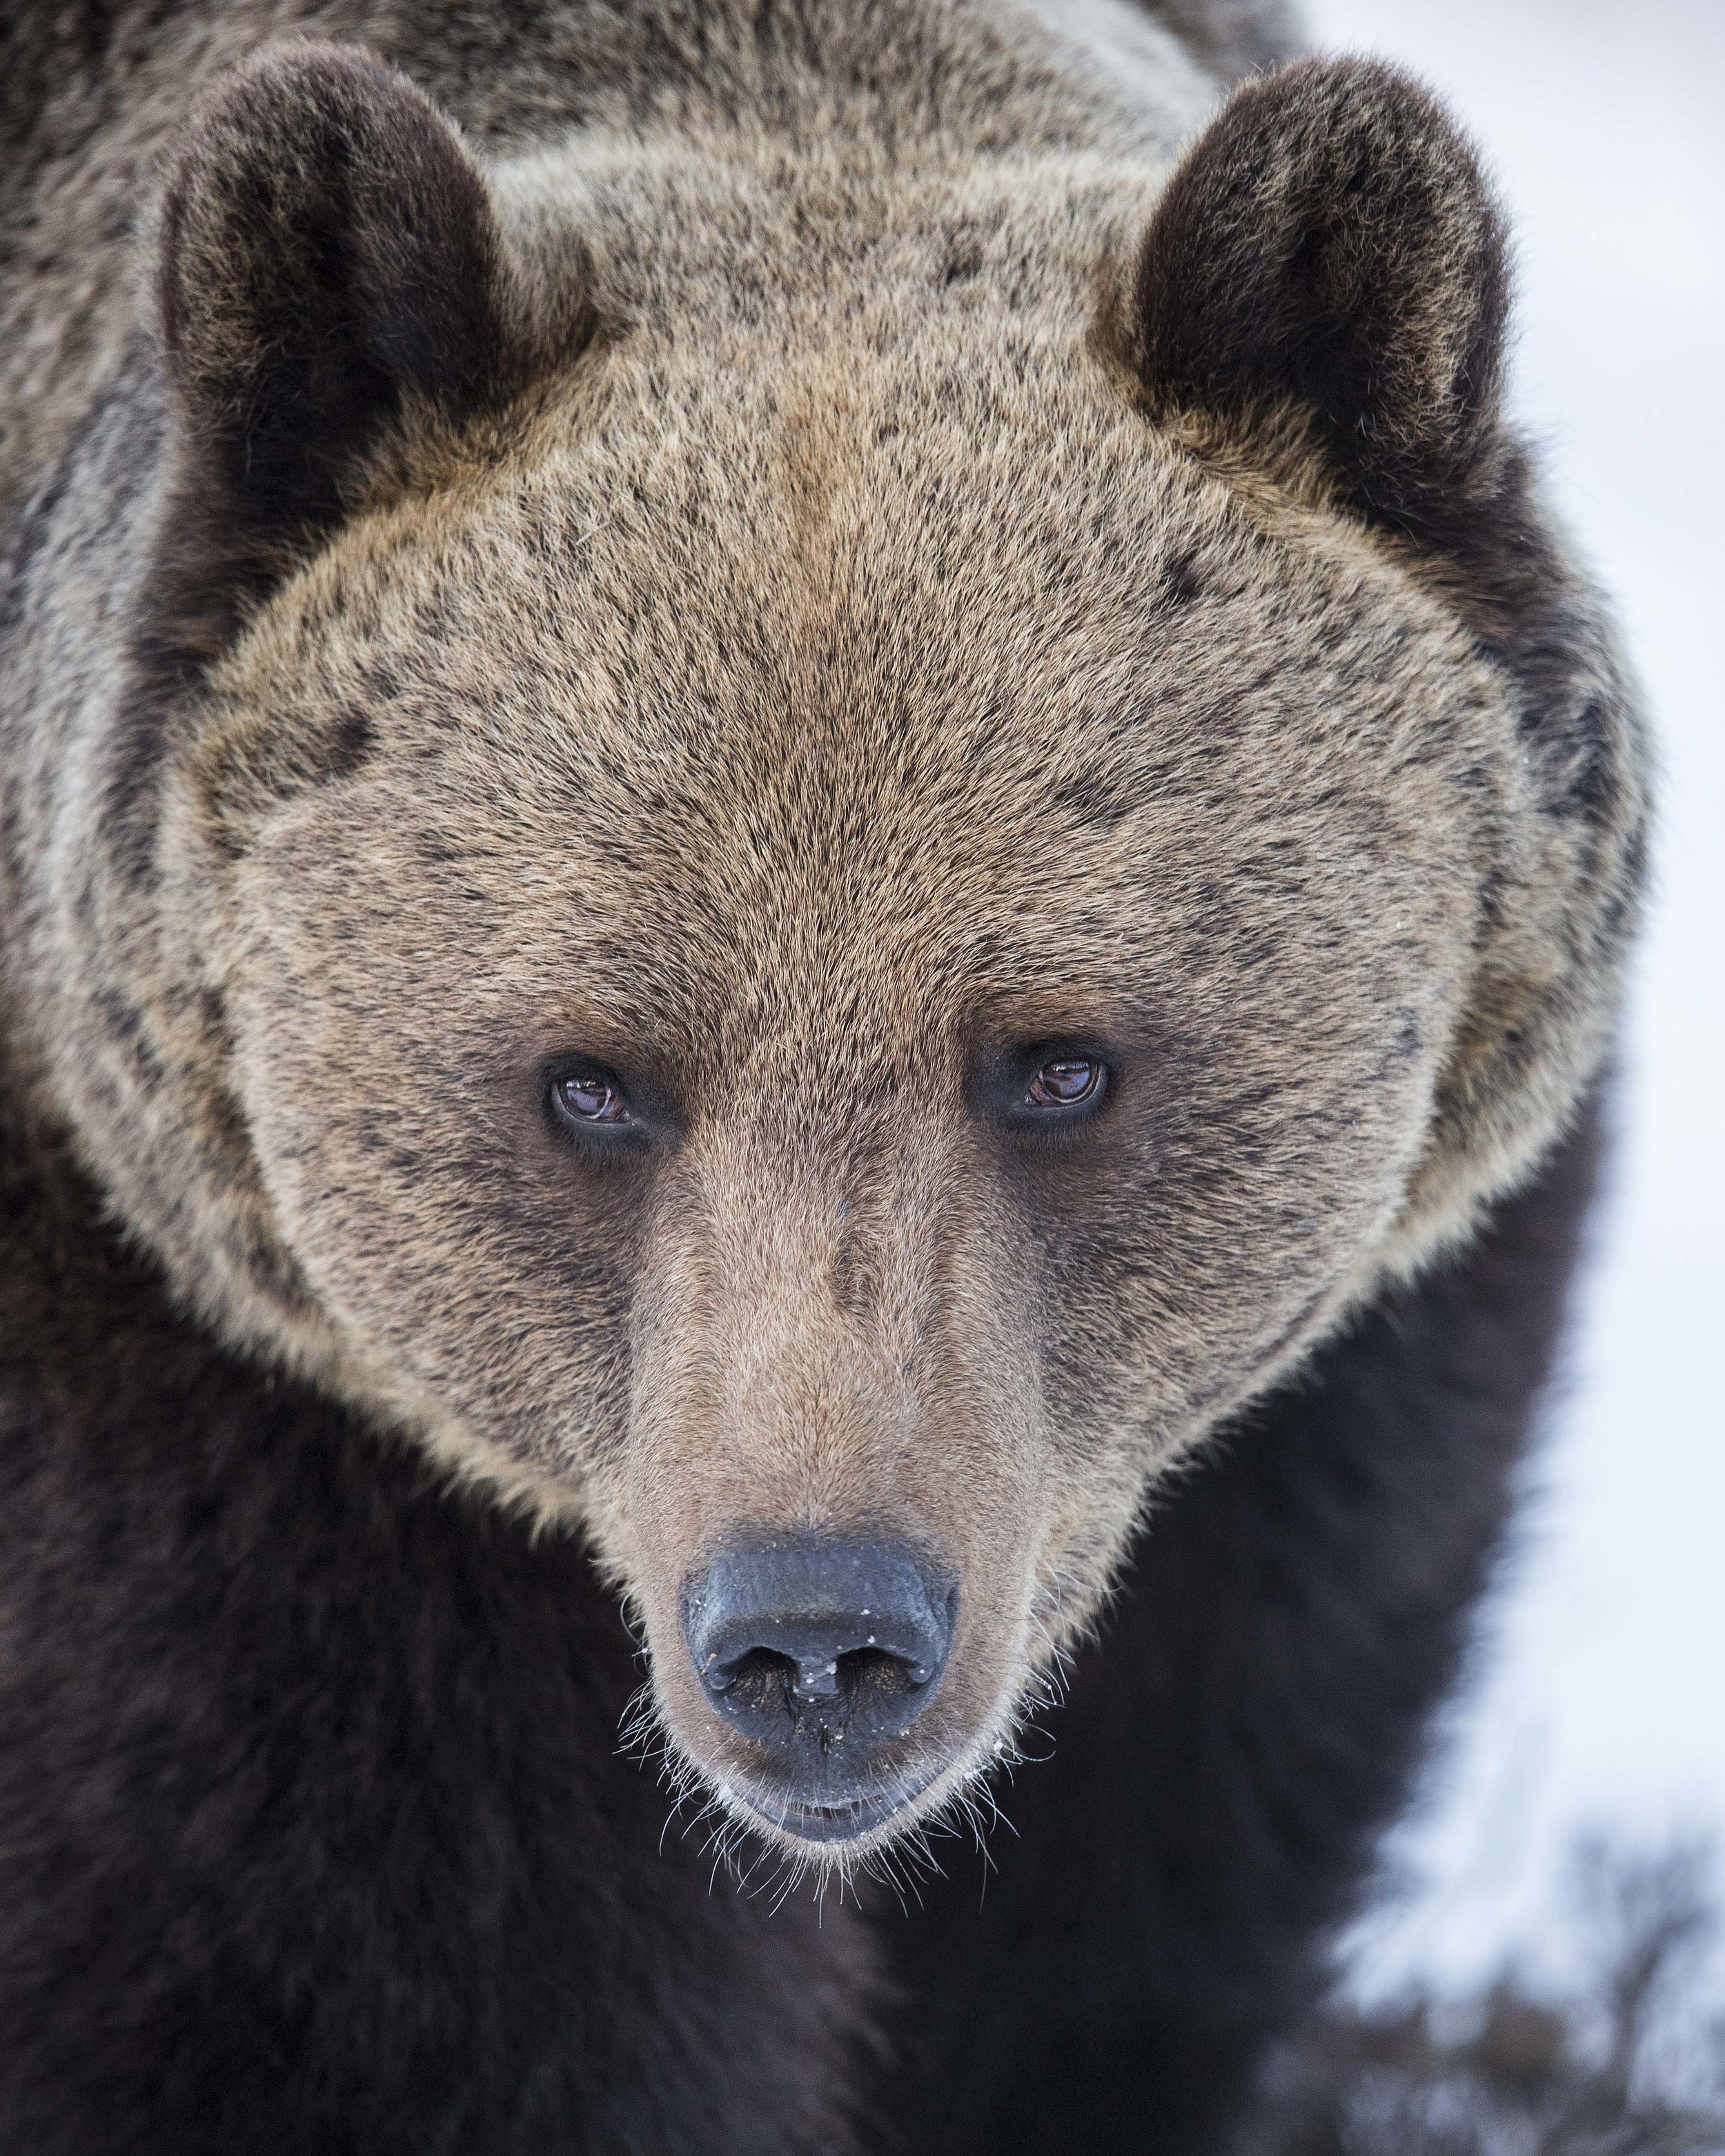 Male Brown Bear up close and personal!